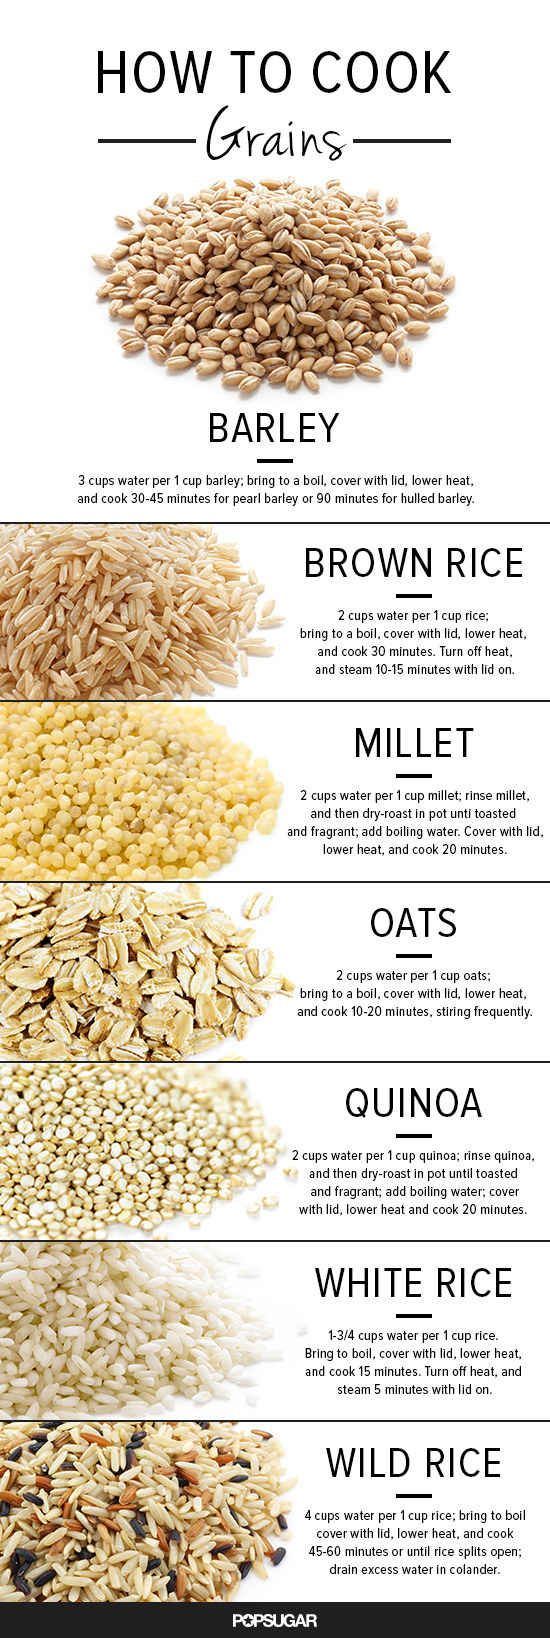 For making all the healthiest grains.